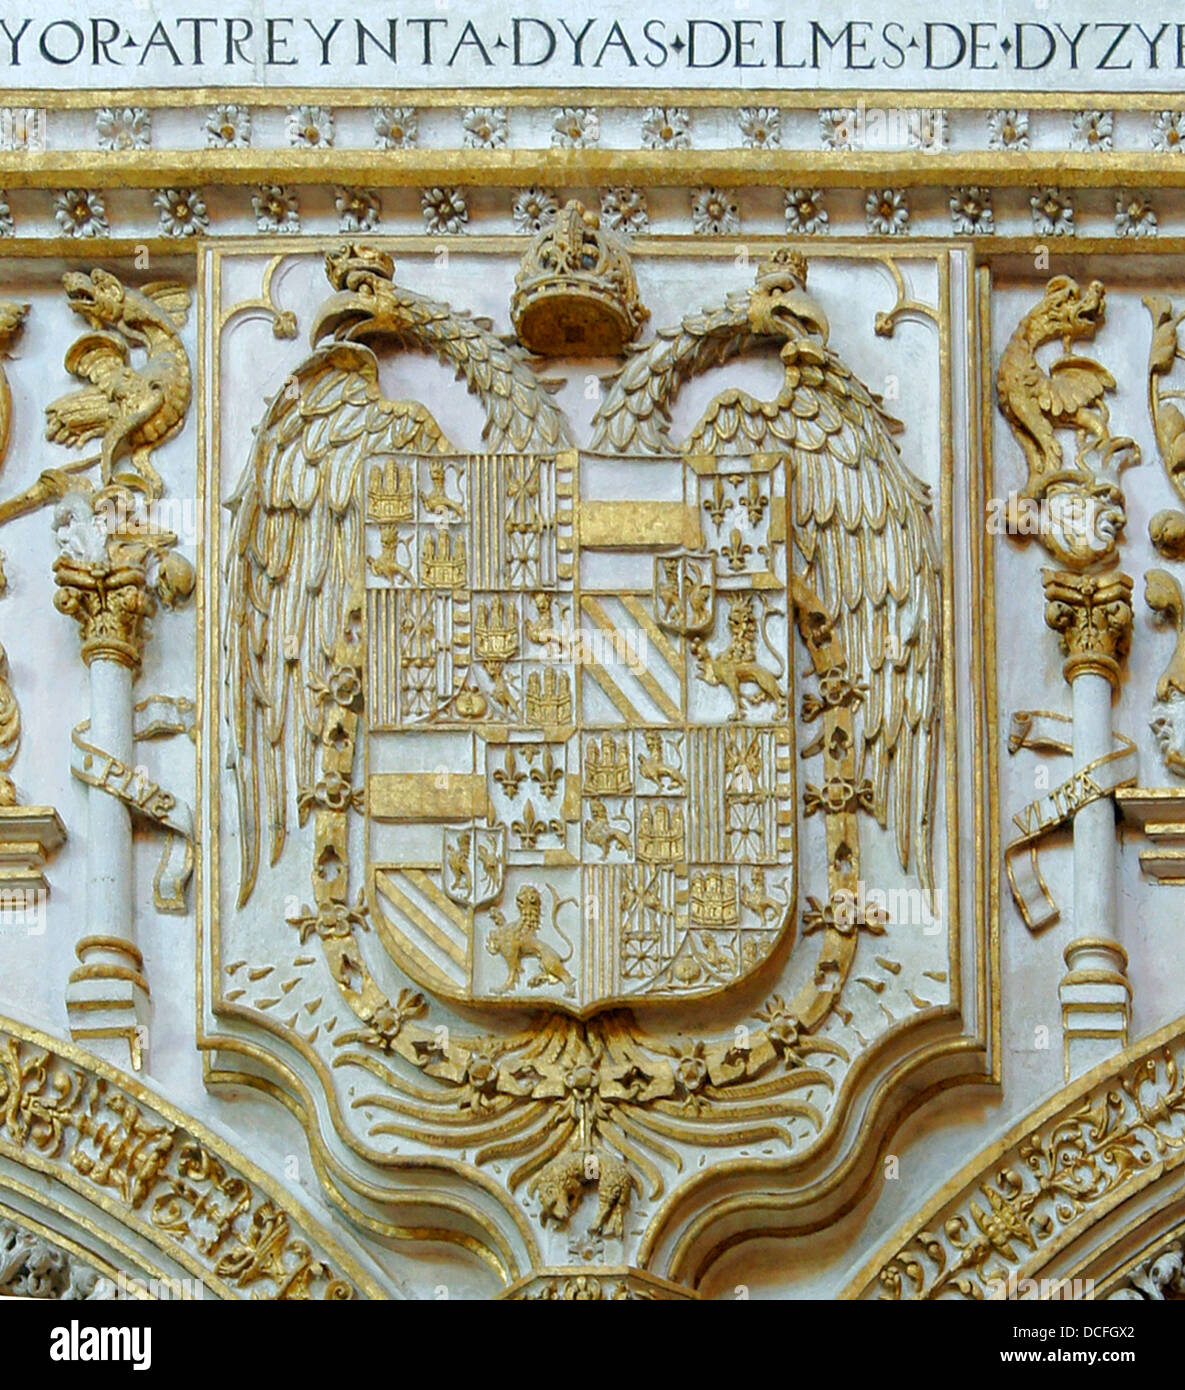 coat of Arms of King Charles 1st, King of Spain, Emperor Charles V of the Holy Roman German Empire, golden stucco, - Stock Image